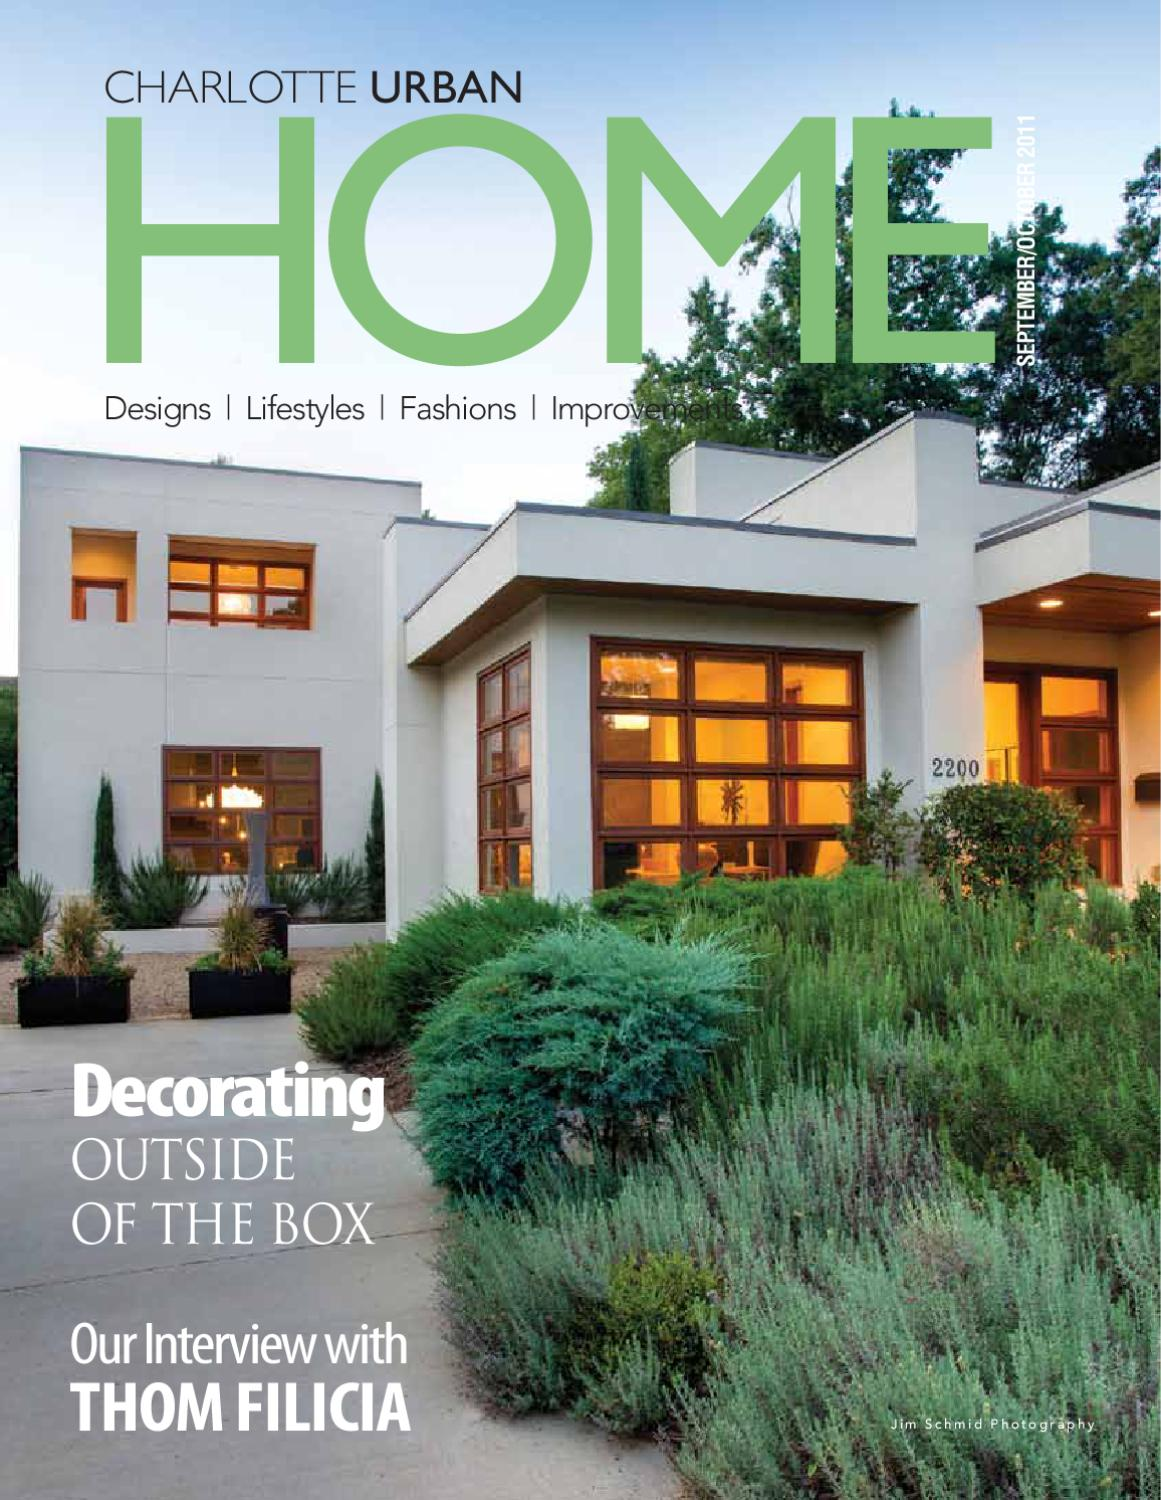 urban home septoct 2011 issue